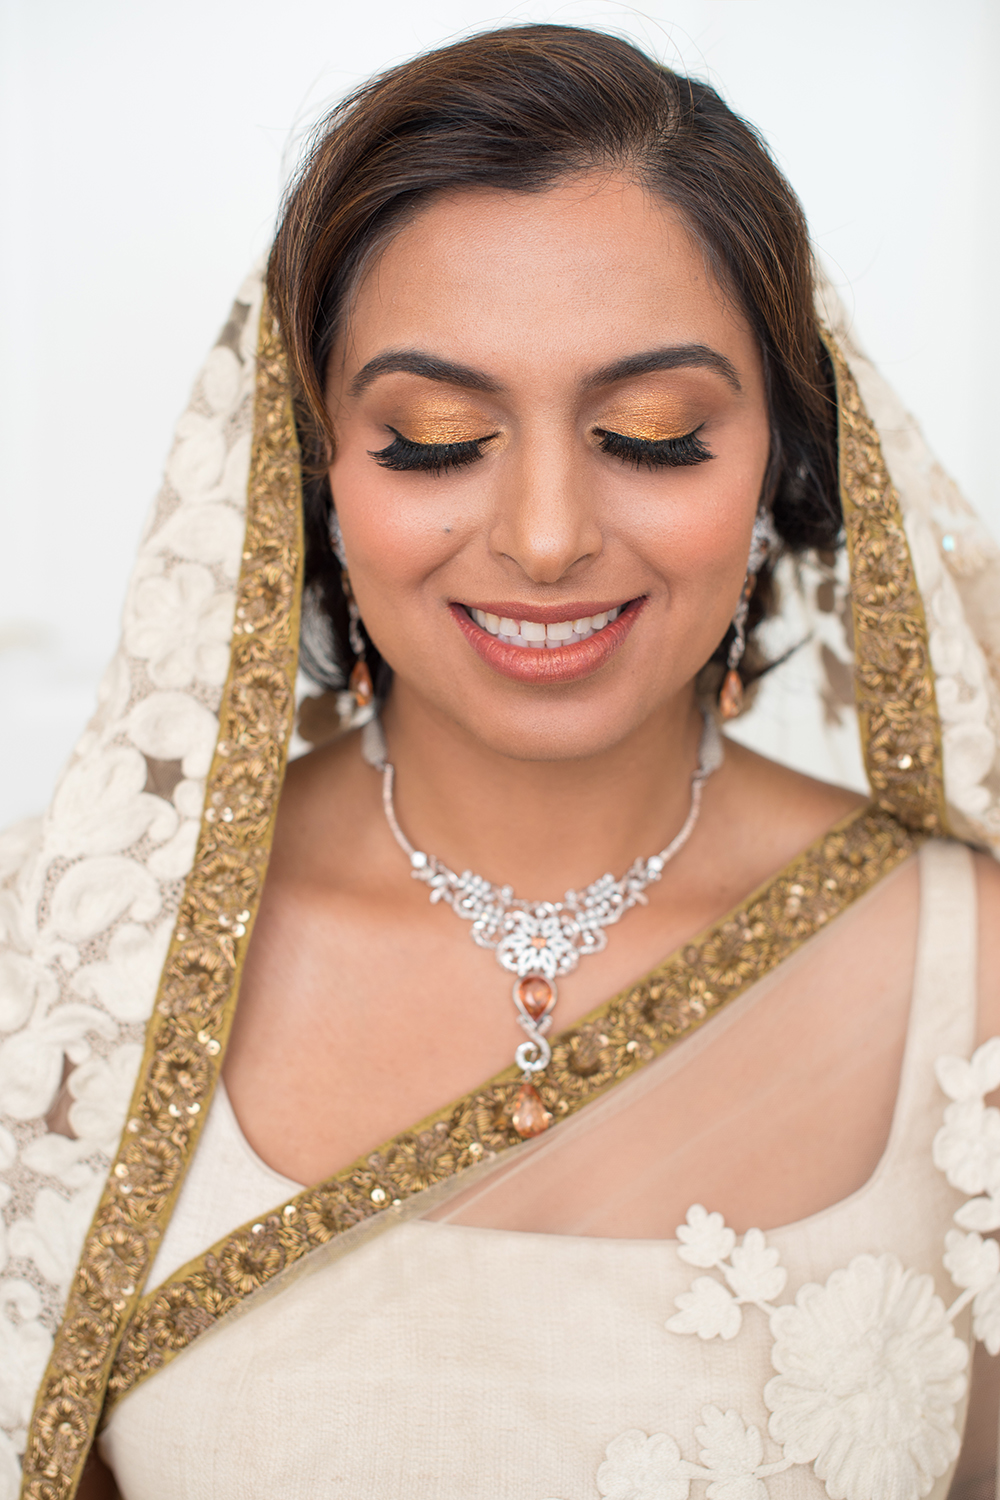 airbush Indian bridal makeup eyes gold glitter bronze by Beauty Affair Agne Skaringa copy.jpg